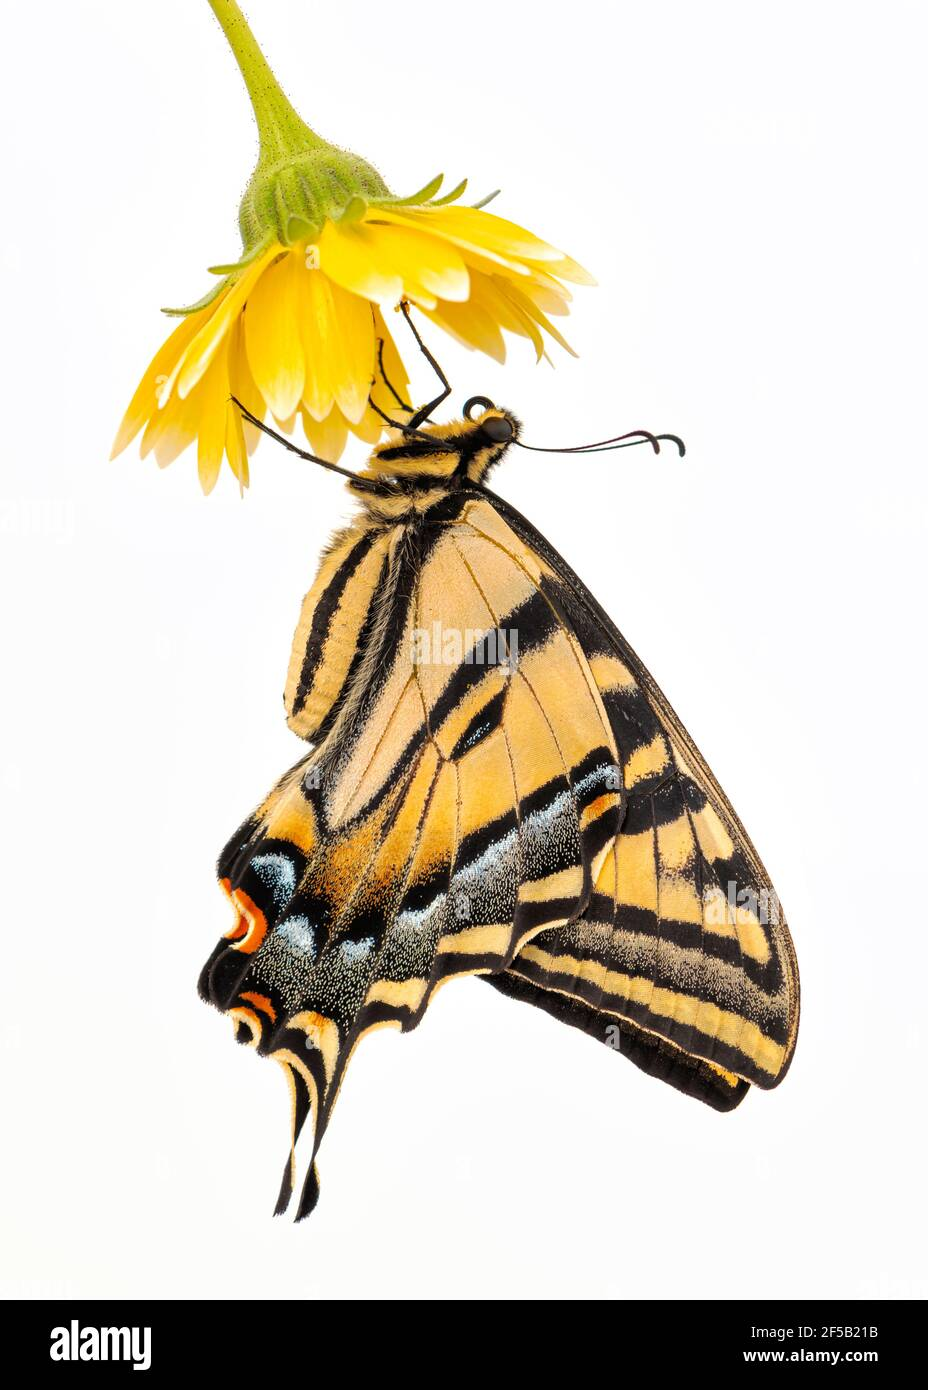 A Western Tiger Swallowtail (Papilio rutulus) hanging from a yellow flower - side view - on a plain white background Stock Photo